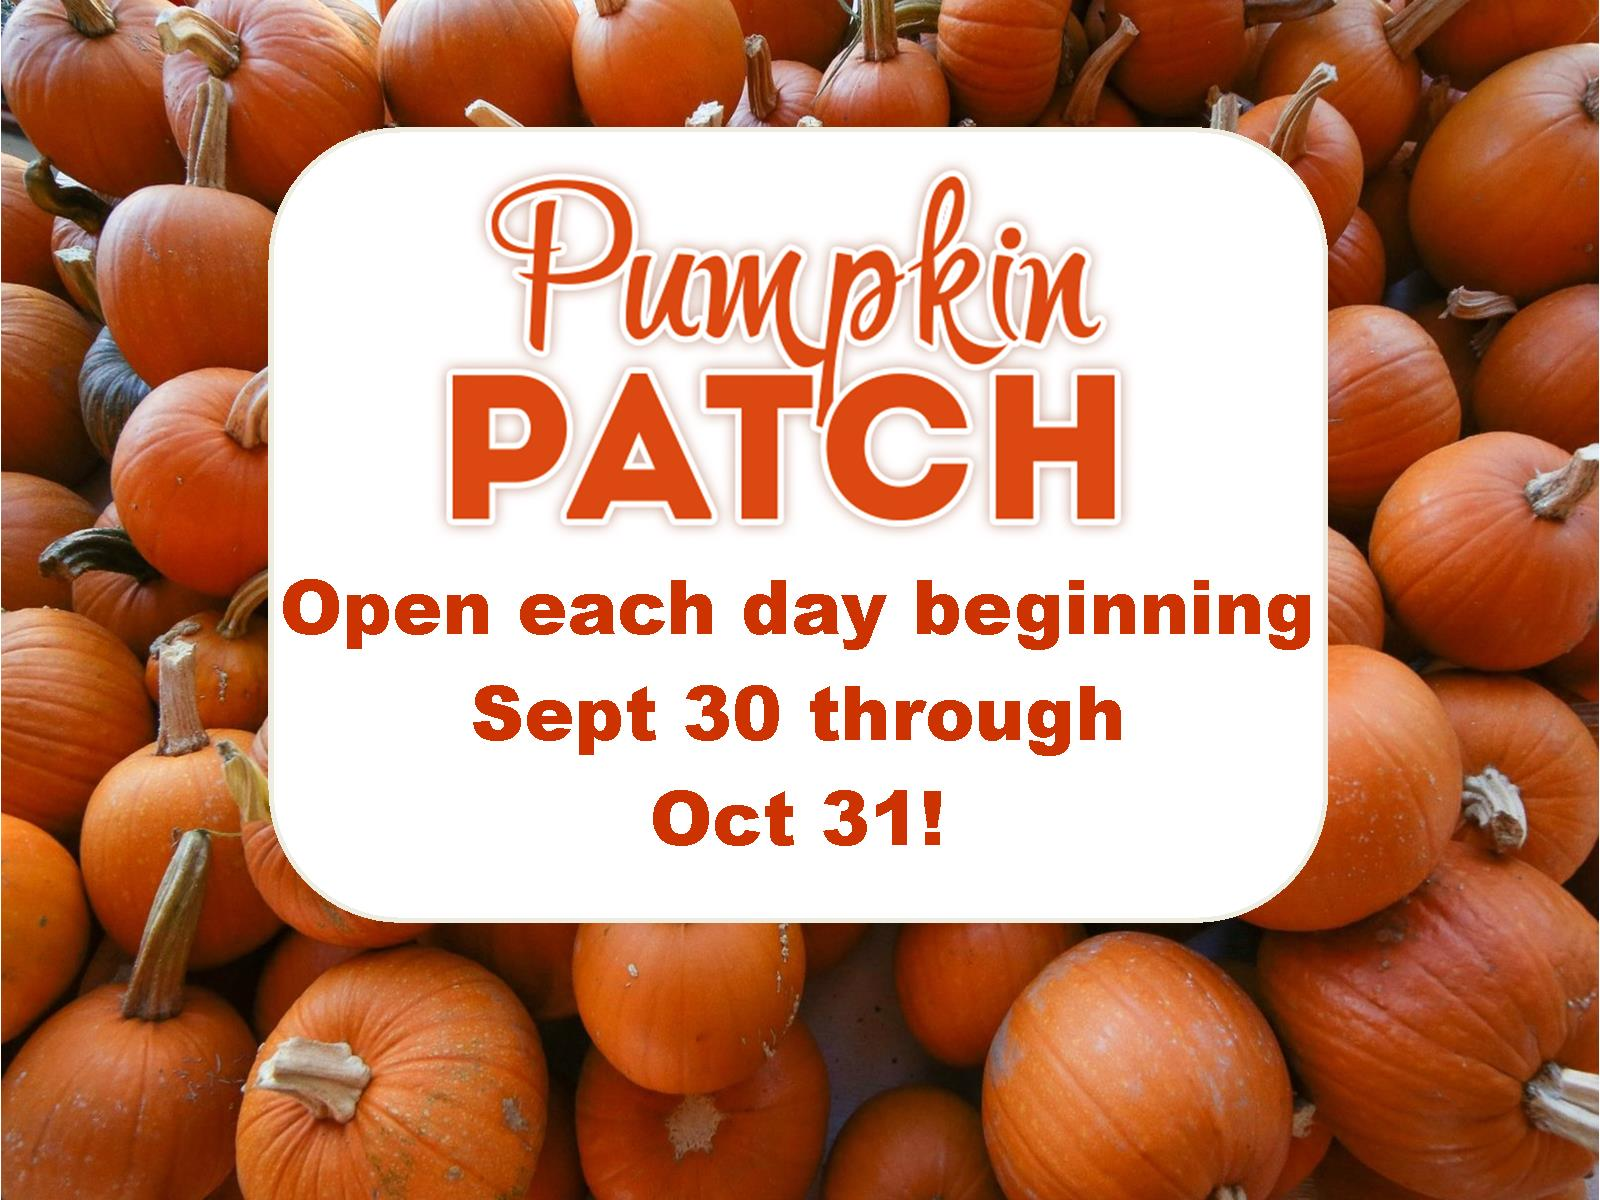 Pumpkin Patch 2017 Promo